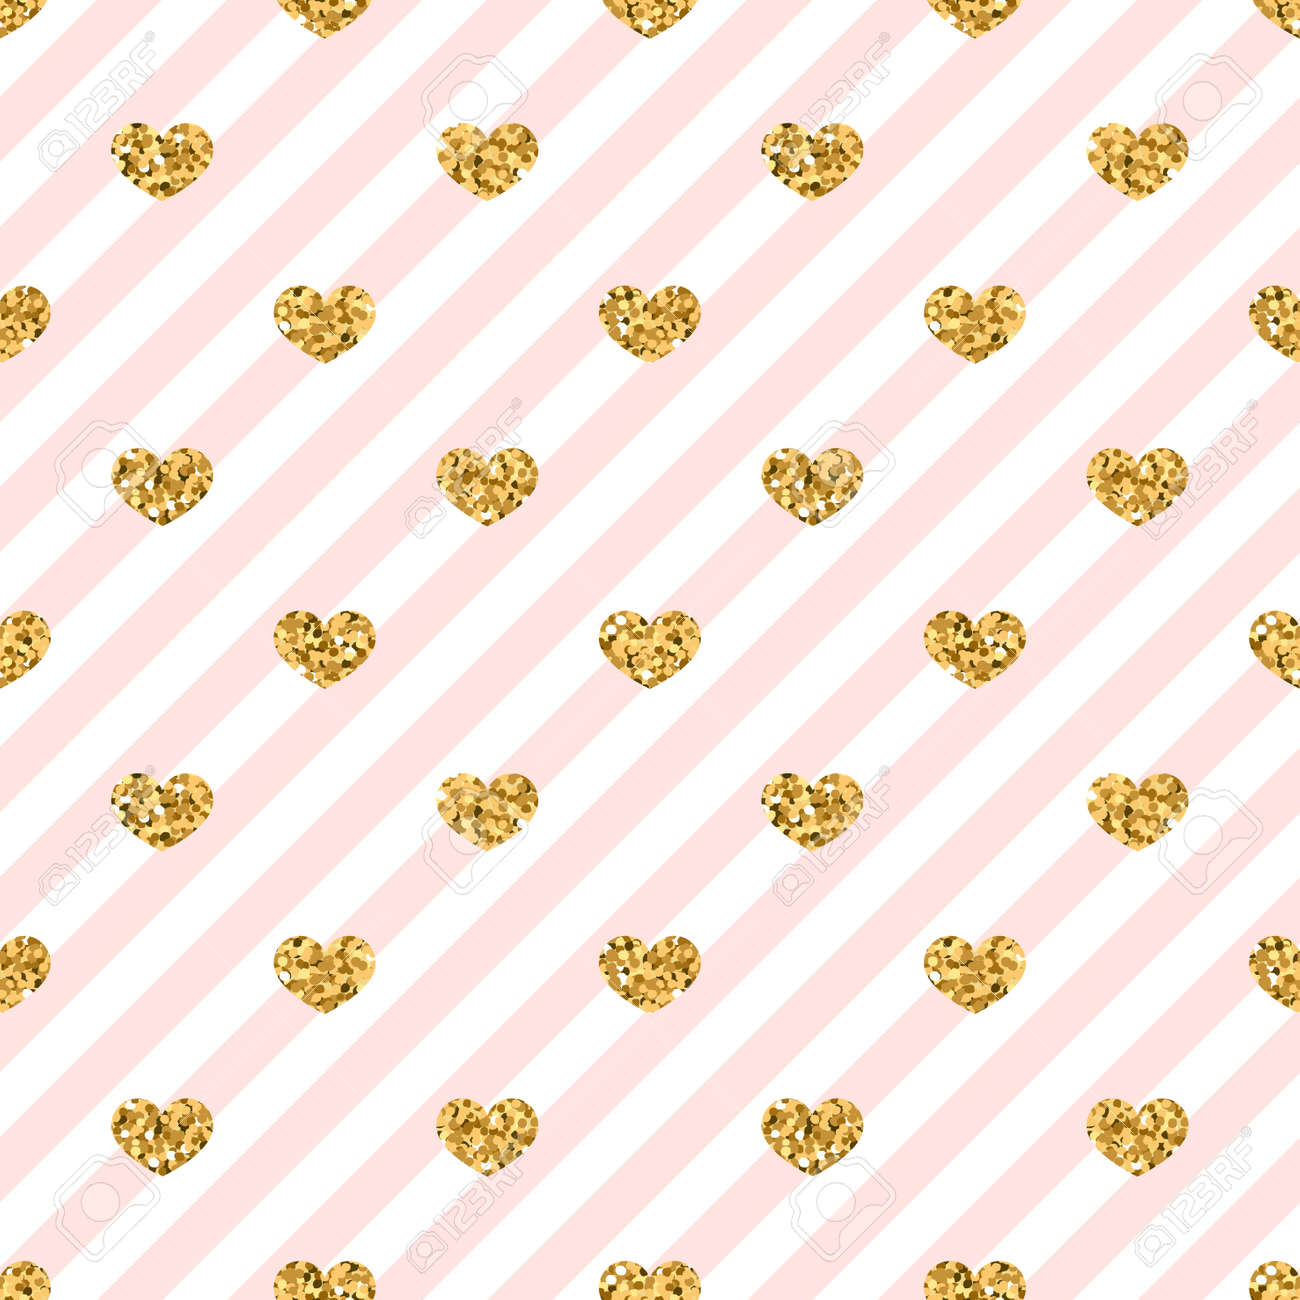 Golden Glitter Love Confetti Hearts On White Pink Line Background